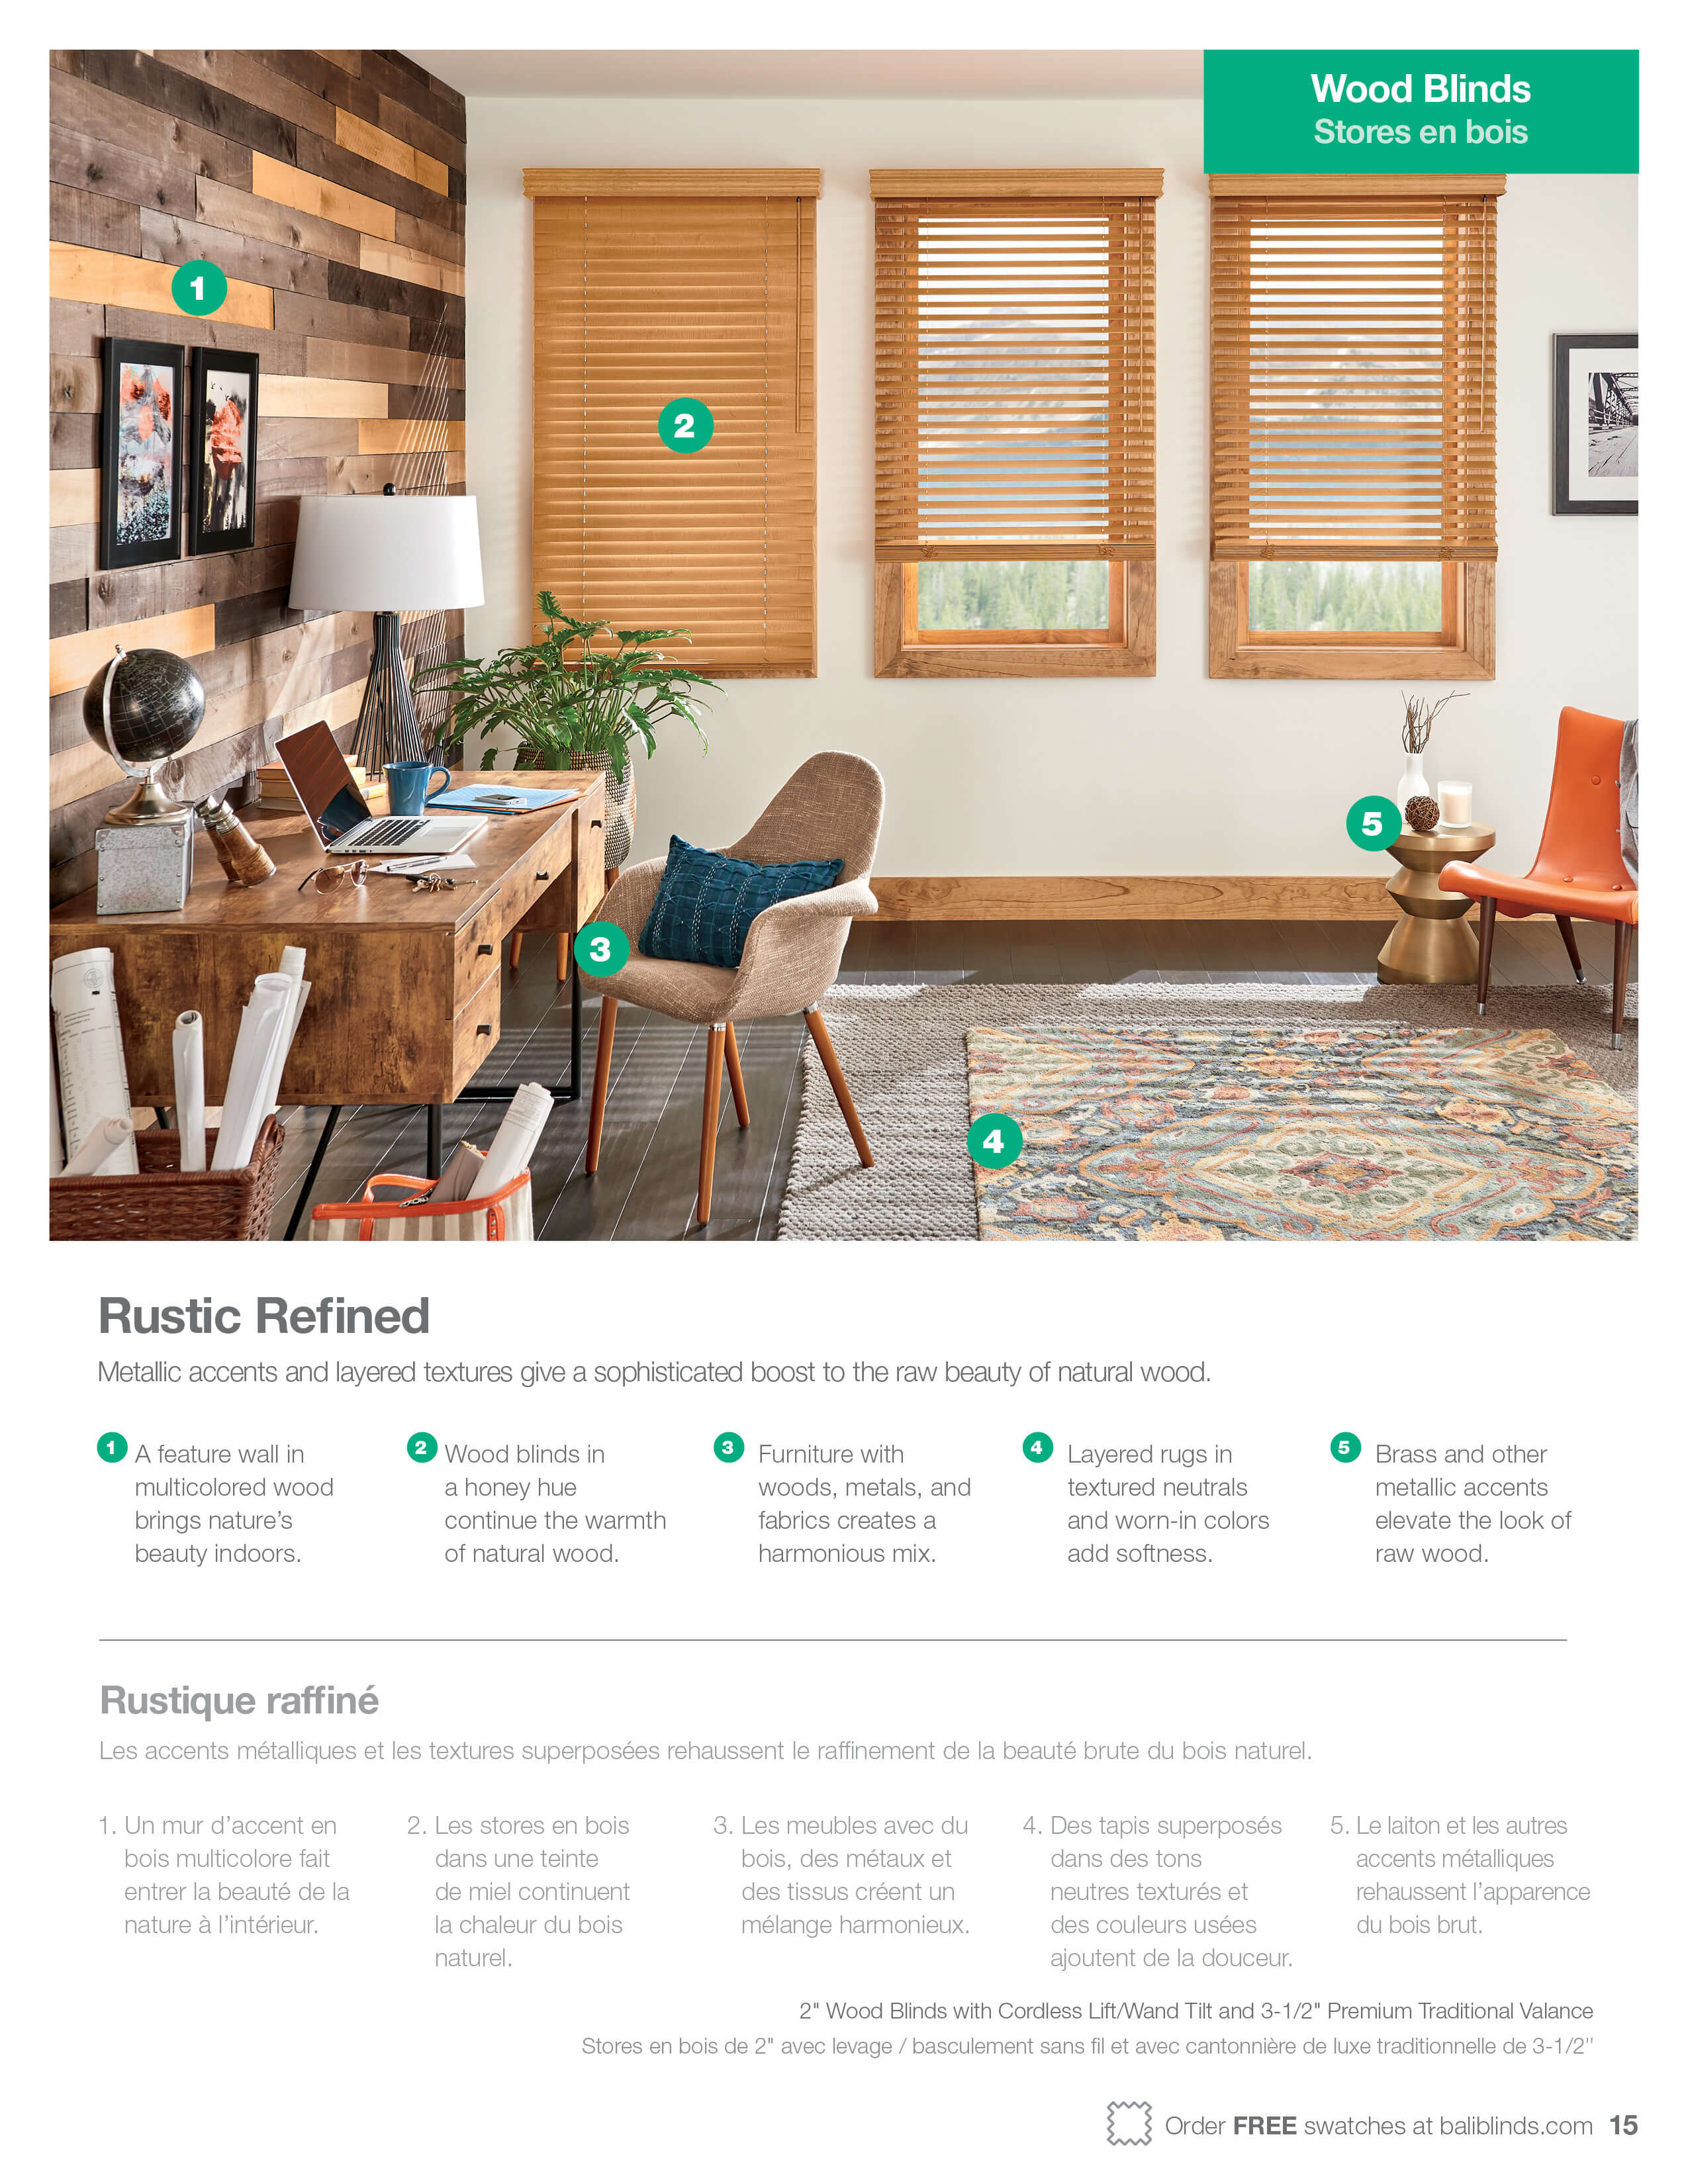 Meuble Accent Base De Lit Inspiration Catalog Costco Bali Blinds And Shades